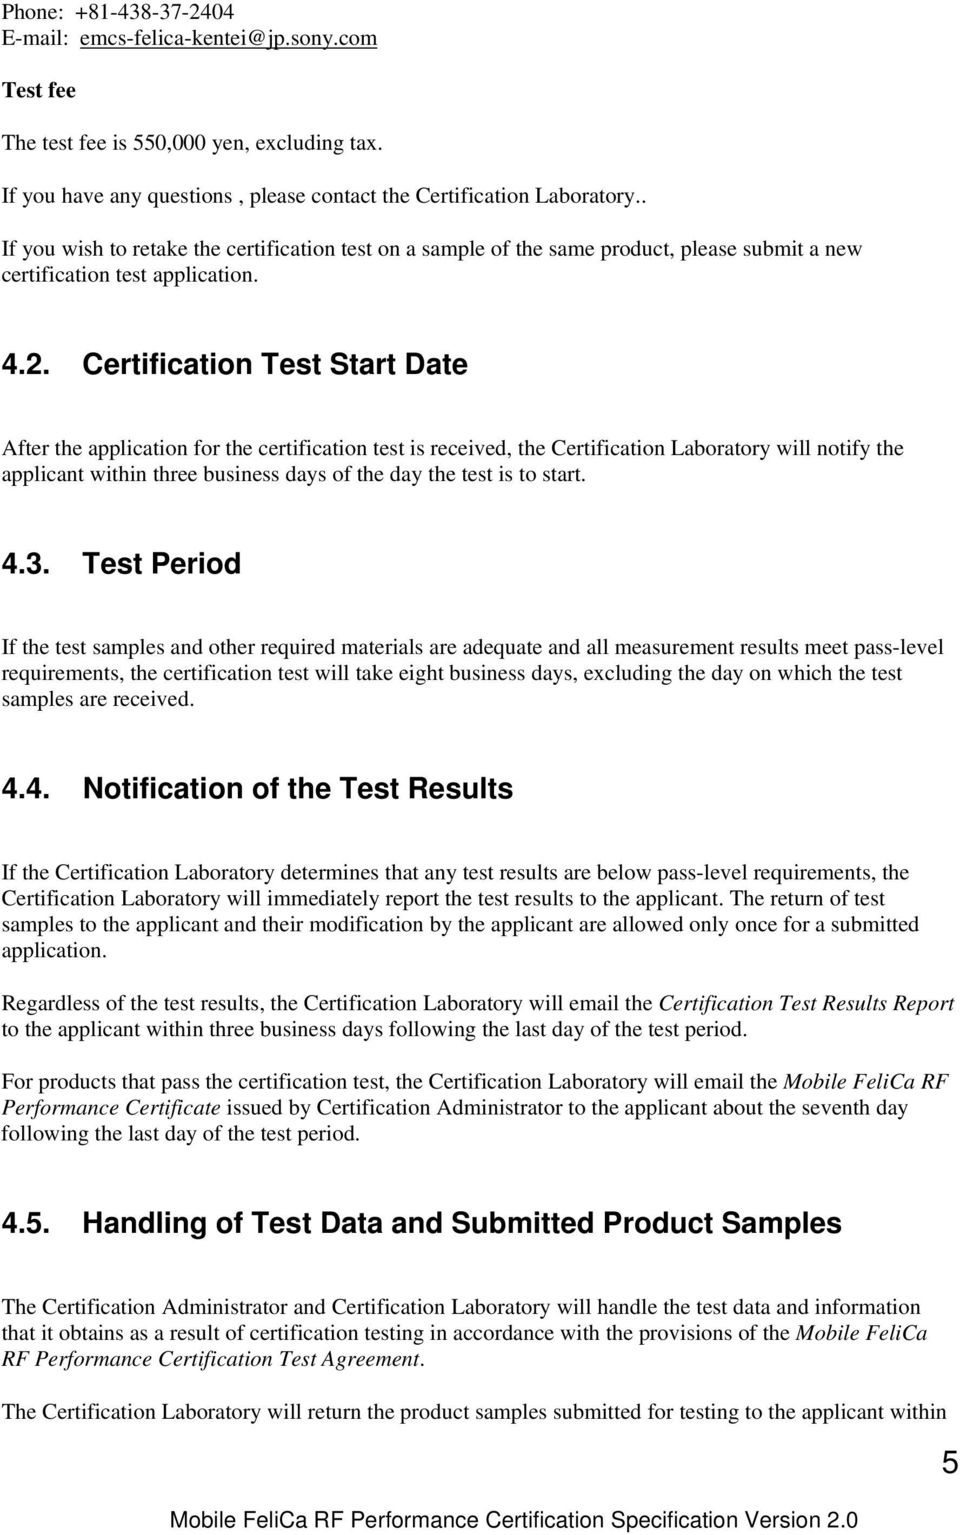 Certification Test Start Date After the application for the certification test is received, the Certification Laboratory will notify the applicant within three business days of the day the test is to